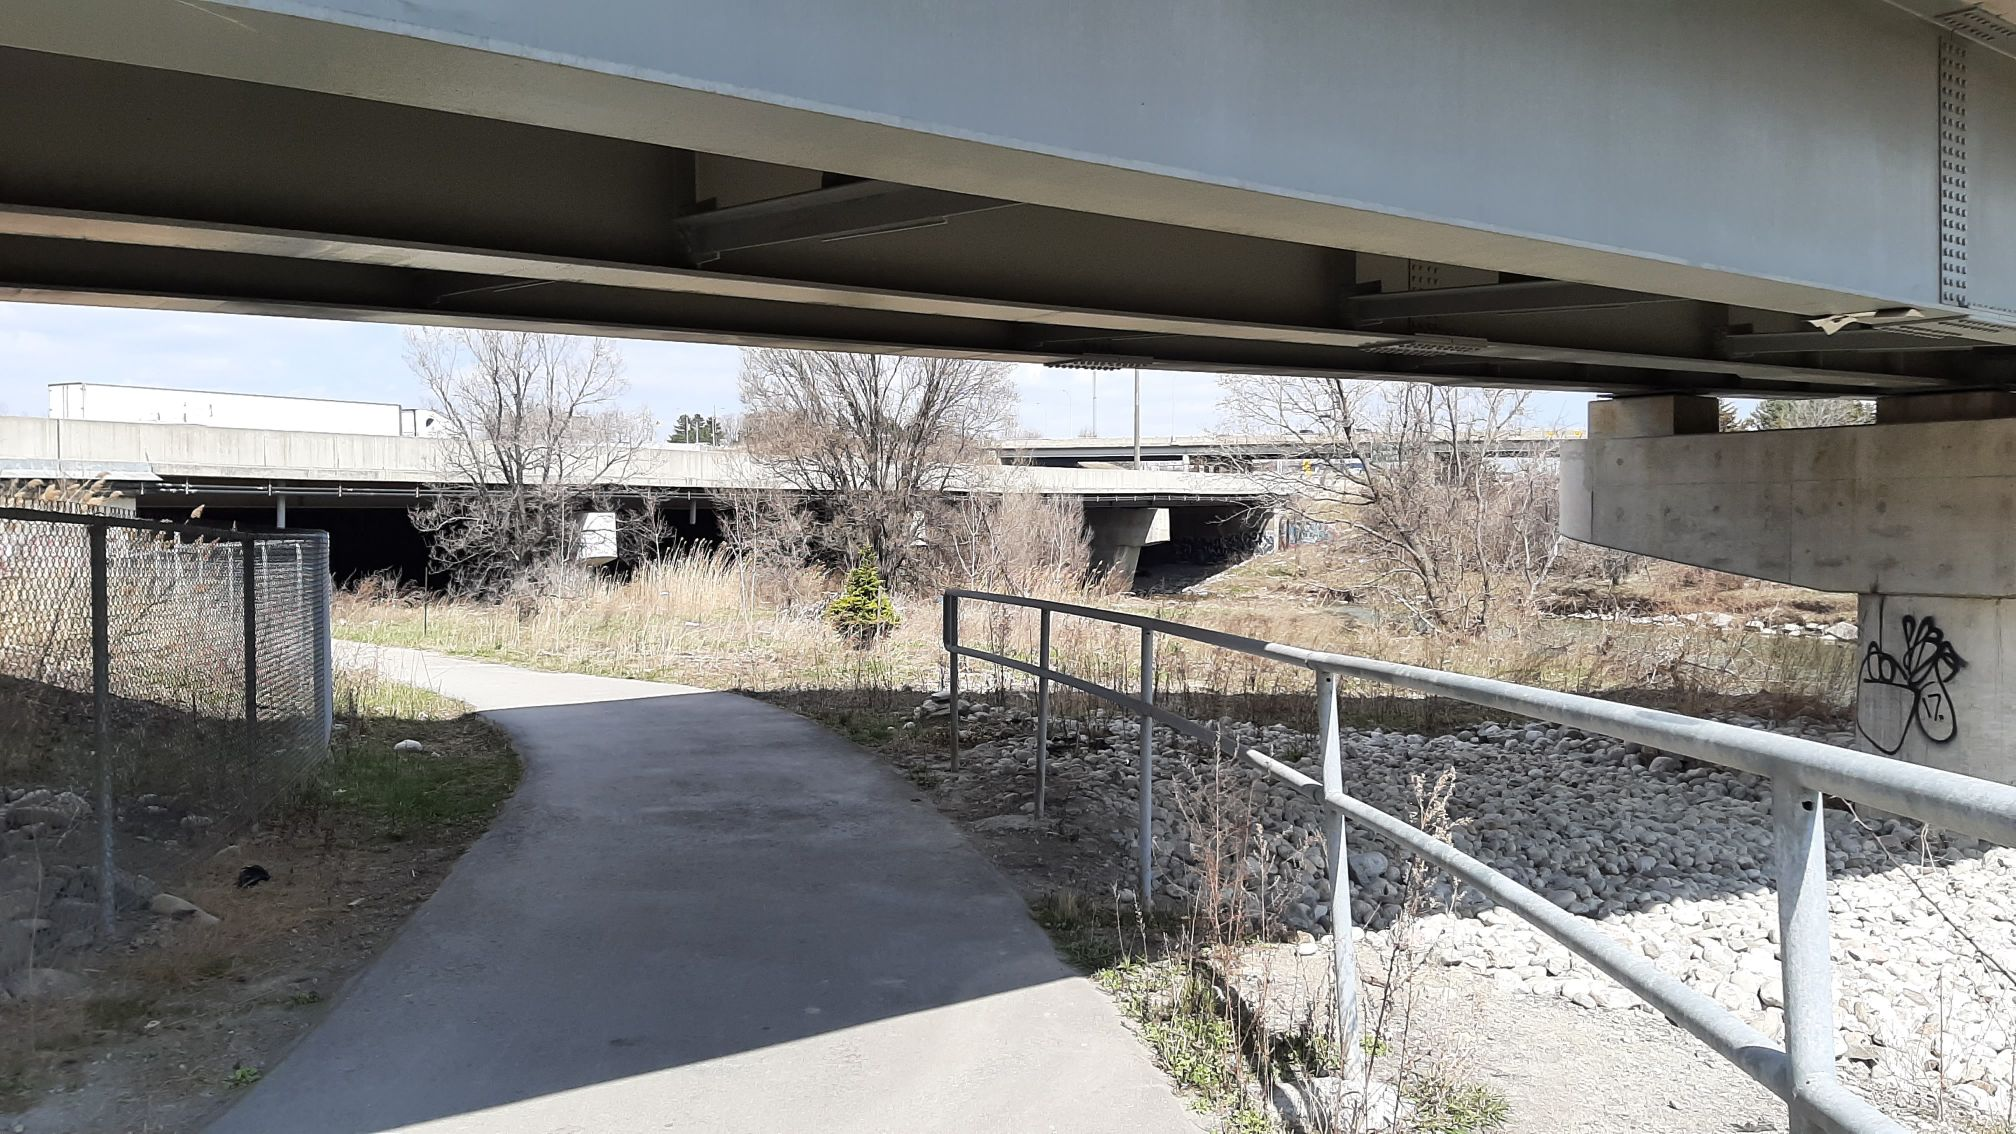 A paved trail heads underneath a massive highway